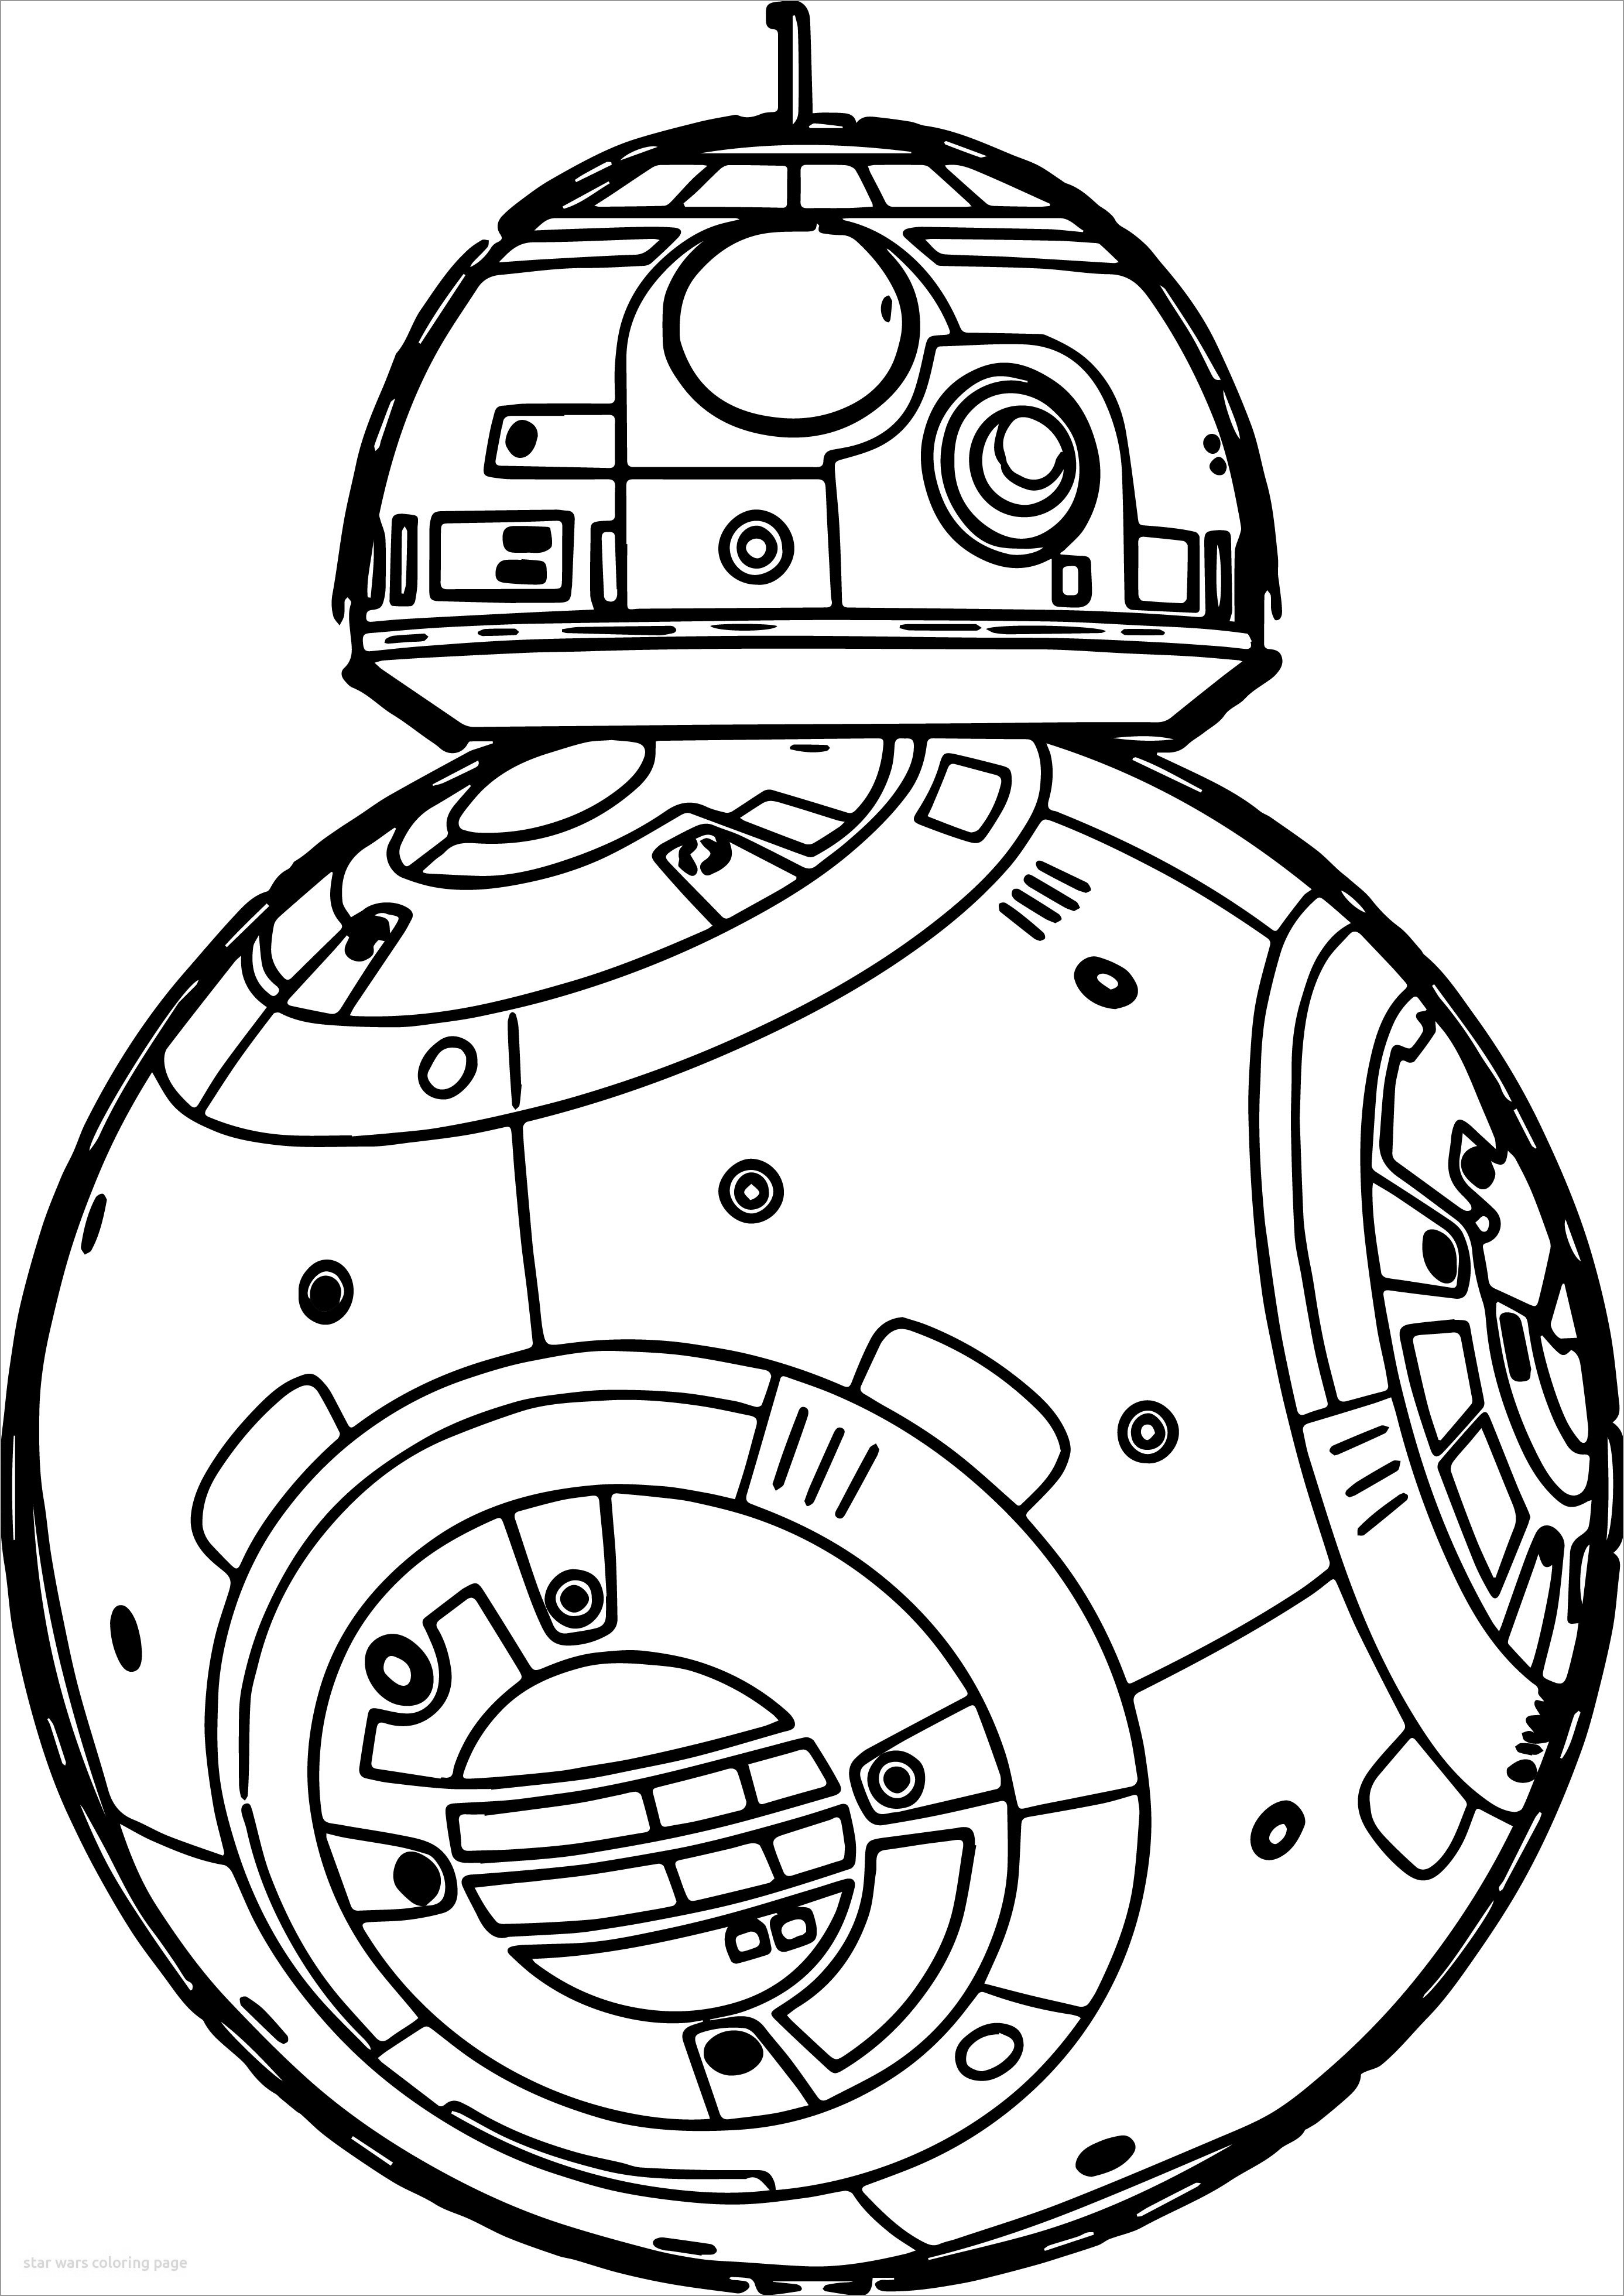 Star Wars Coloring Page the force Awakens Bb-8 Robot